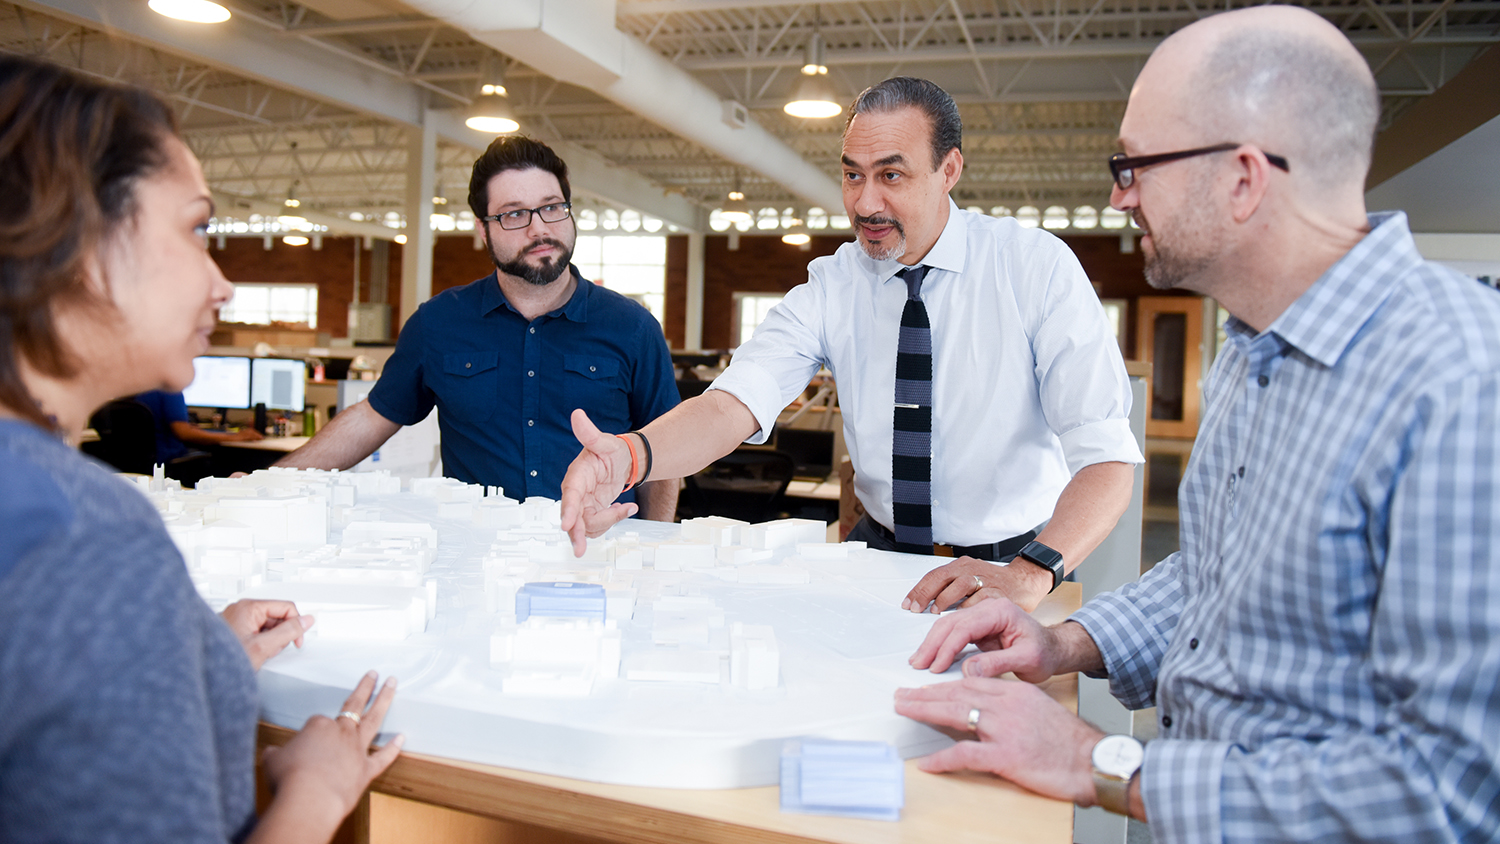 Phil Freelon with scale model of an architectural project.